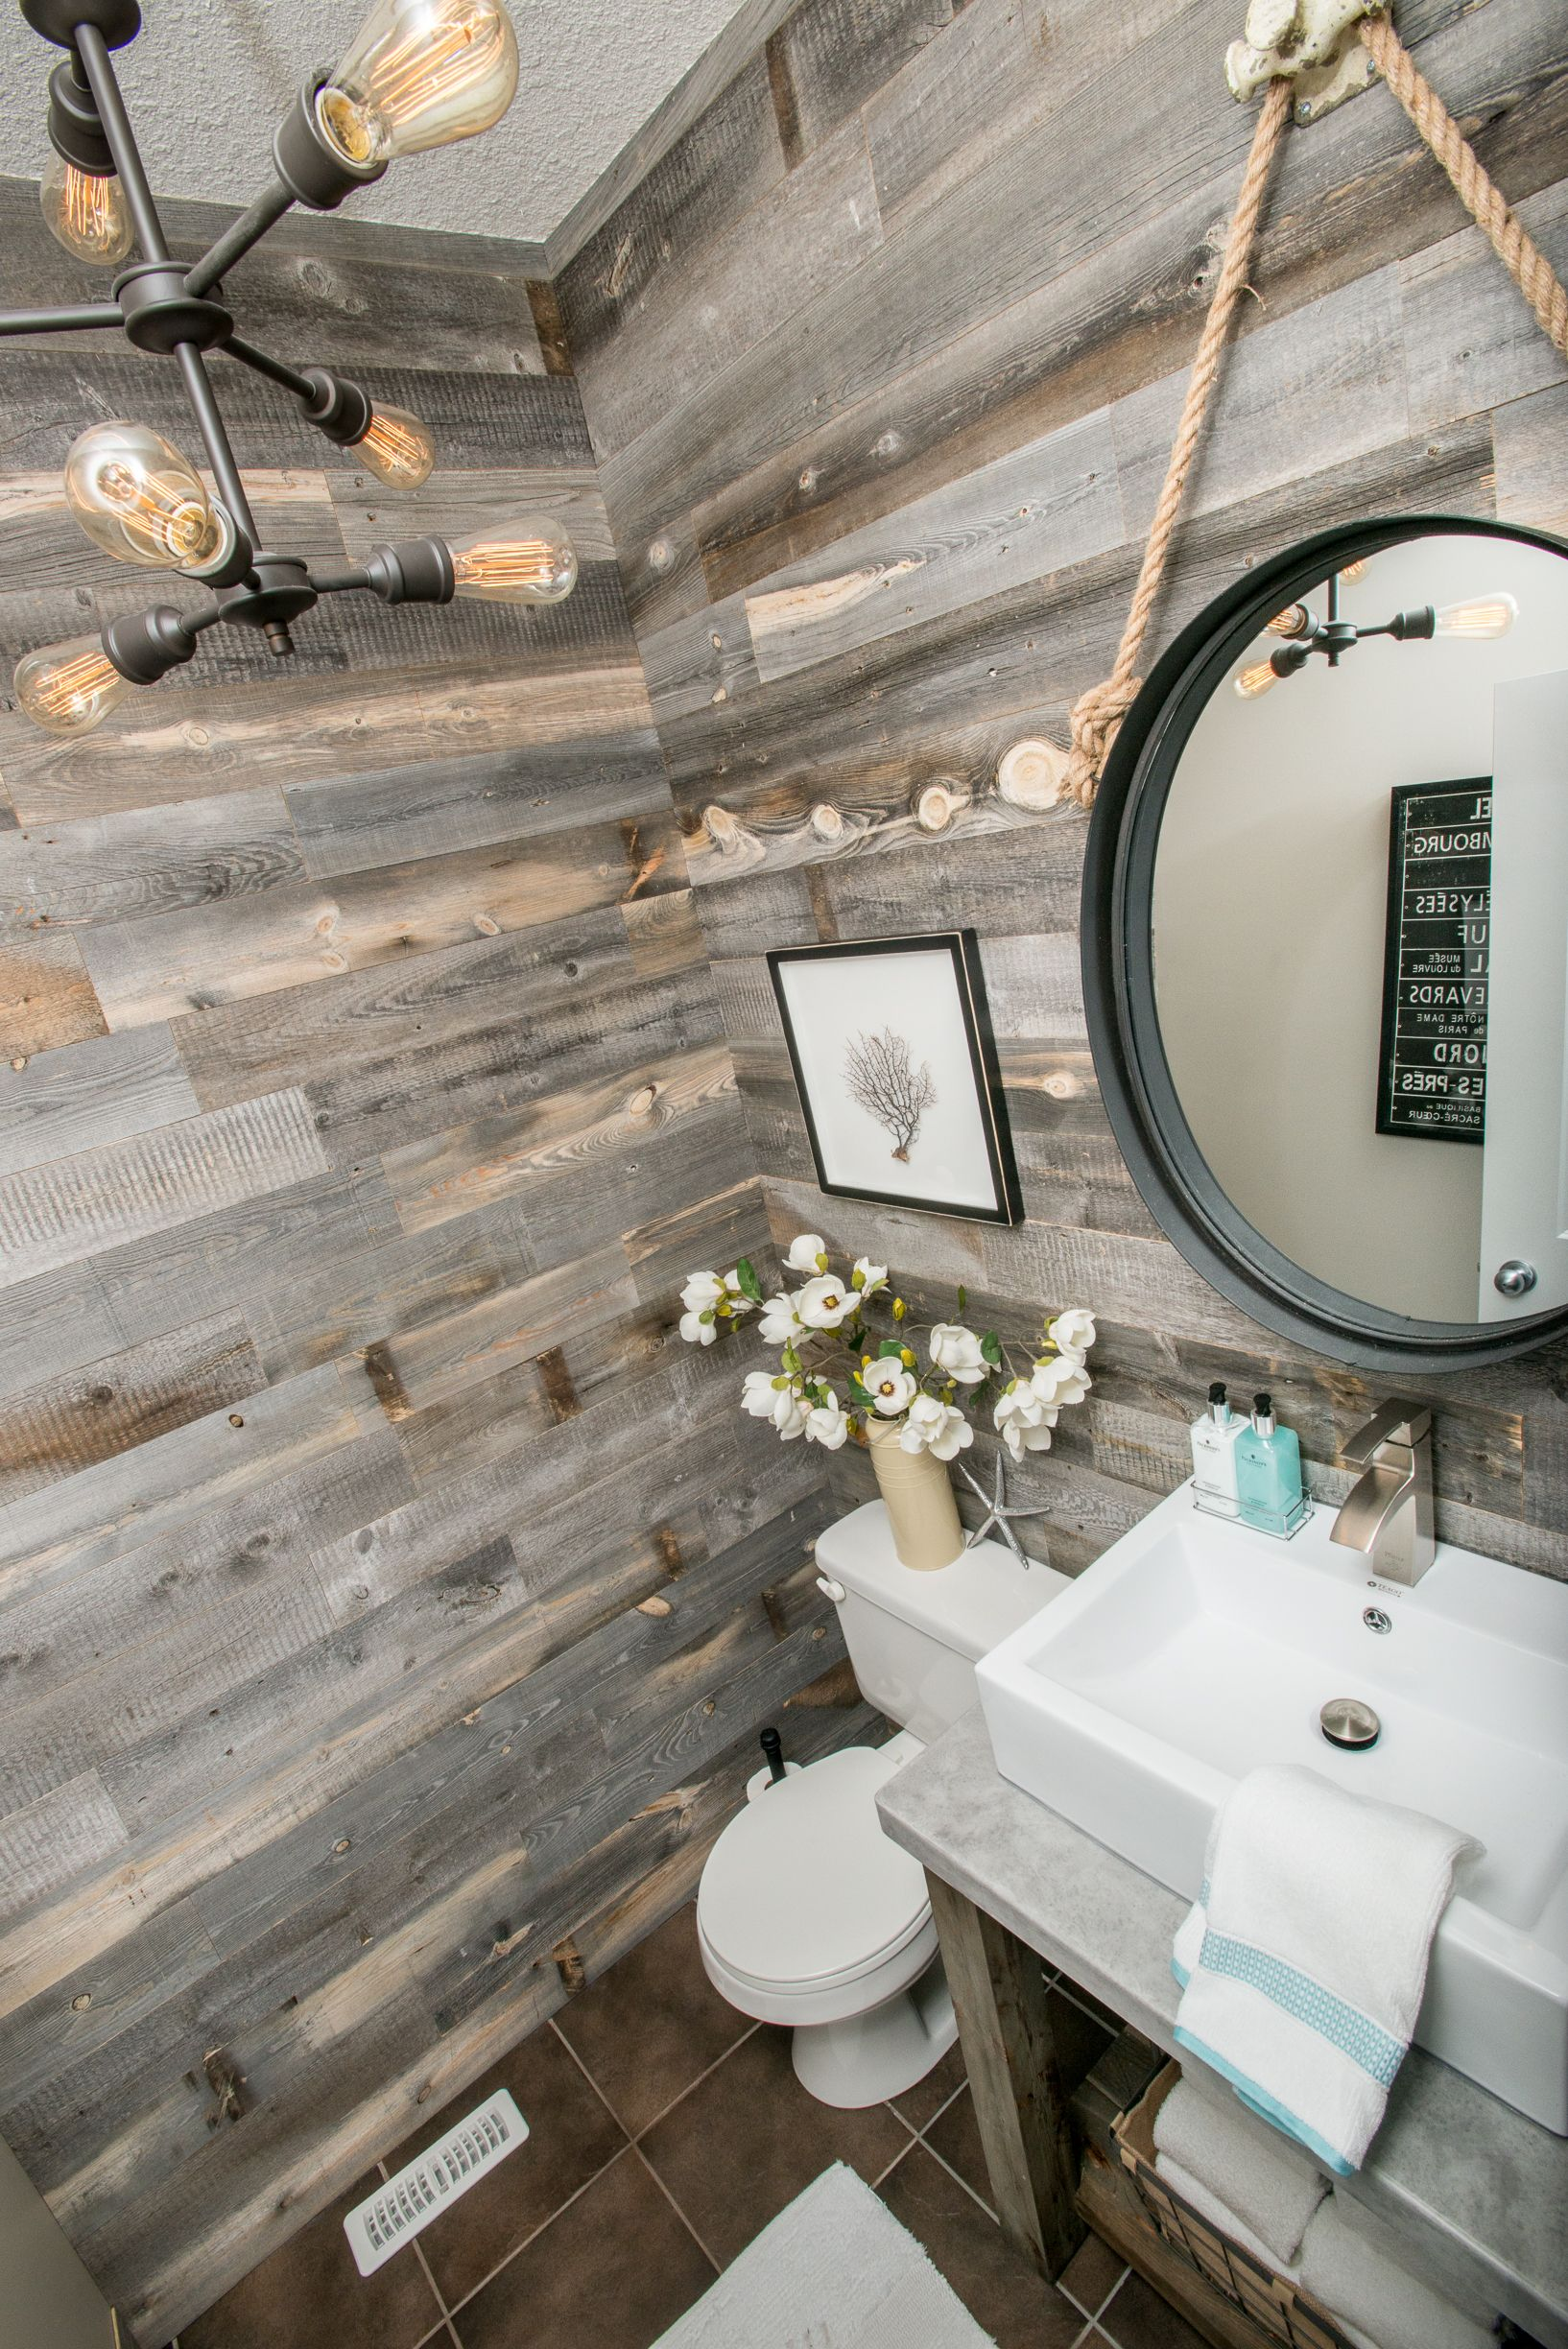 Stikwood Reclaimed Wood Accent Wall Designed By Bella Interiors Photo Credit Dzinephotography